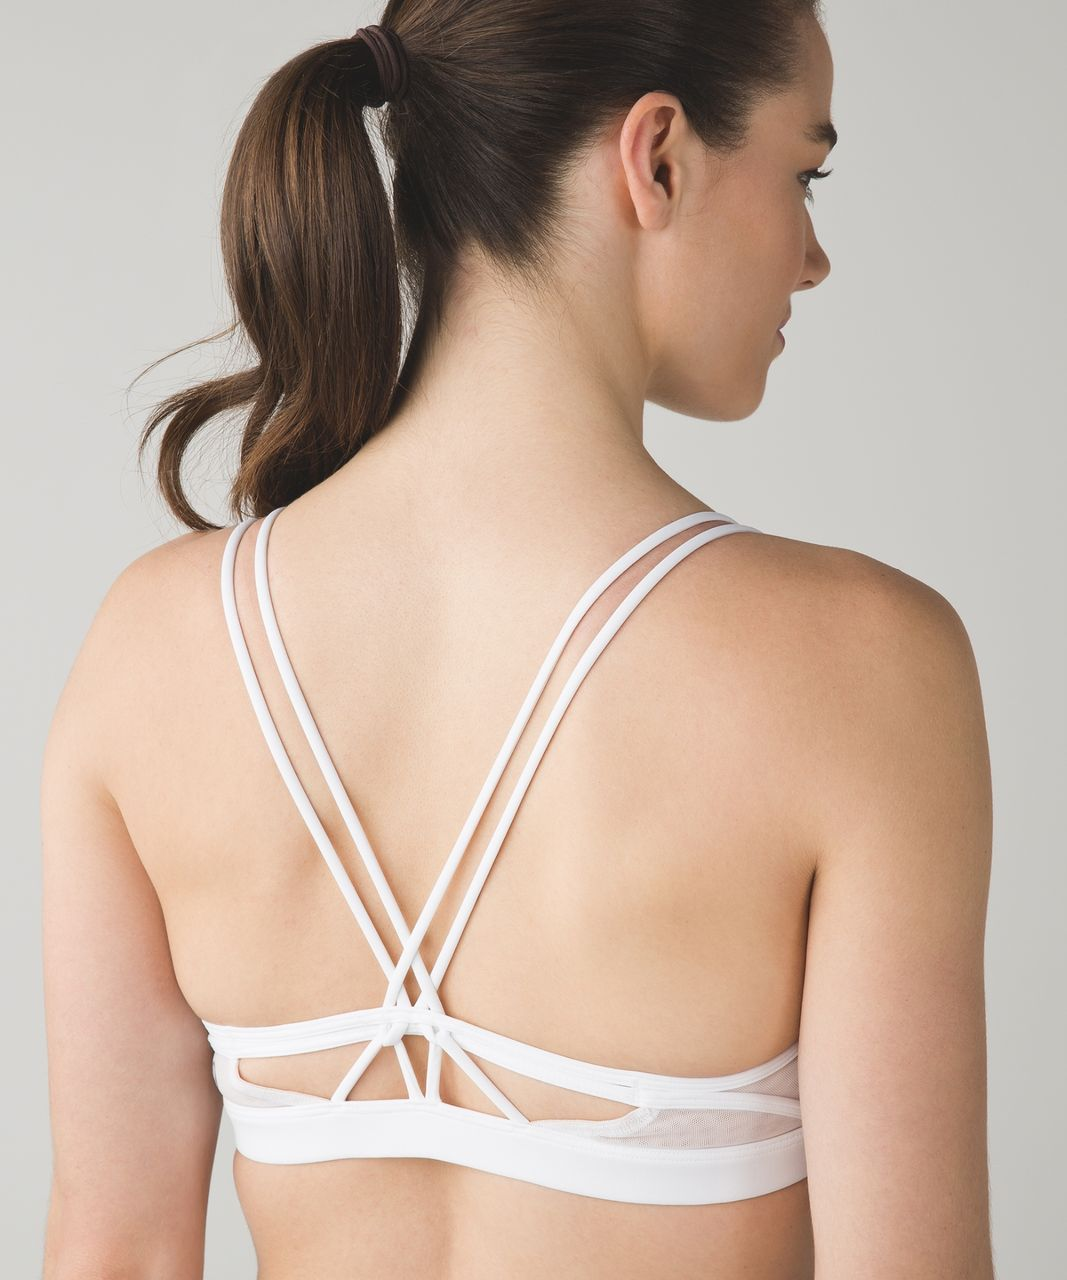 Lululemon Make A Move Bra - White